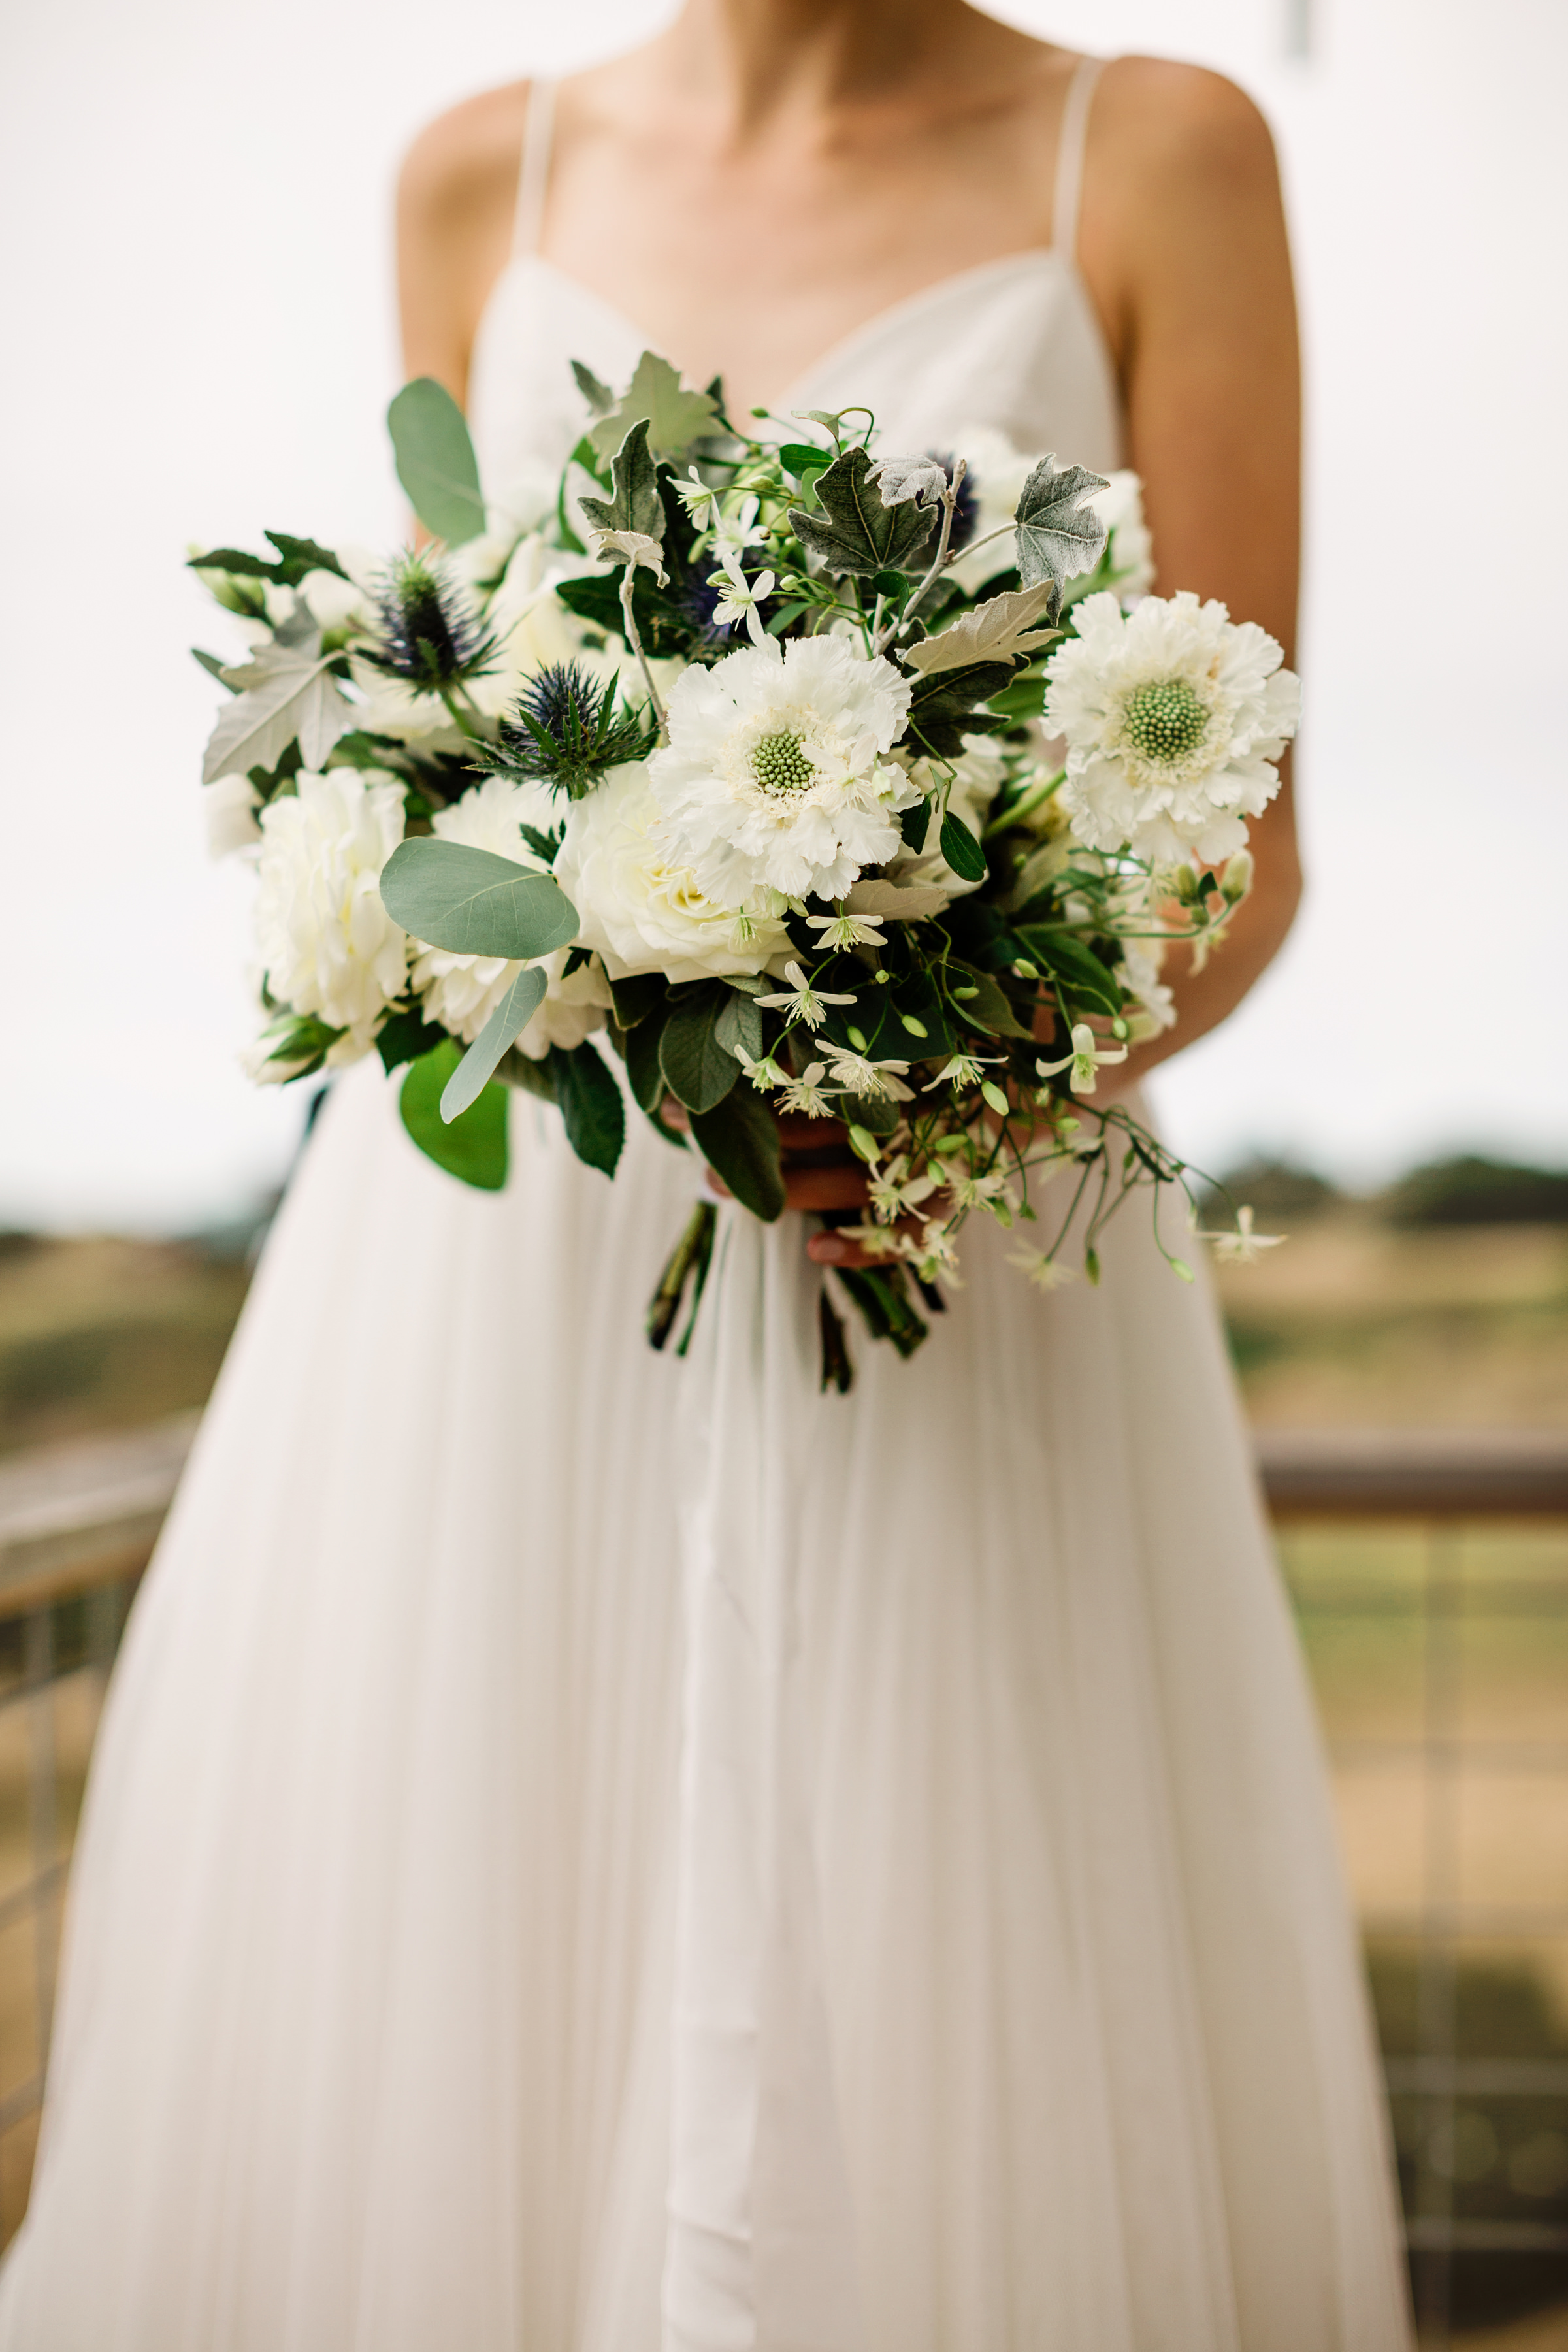 Bride in sleeveless aline with white floral bouquet - photo by Alante Photography